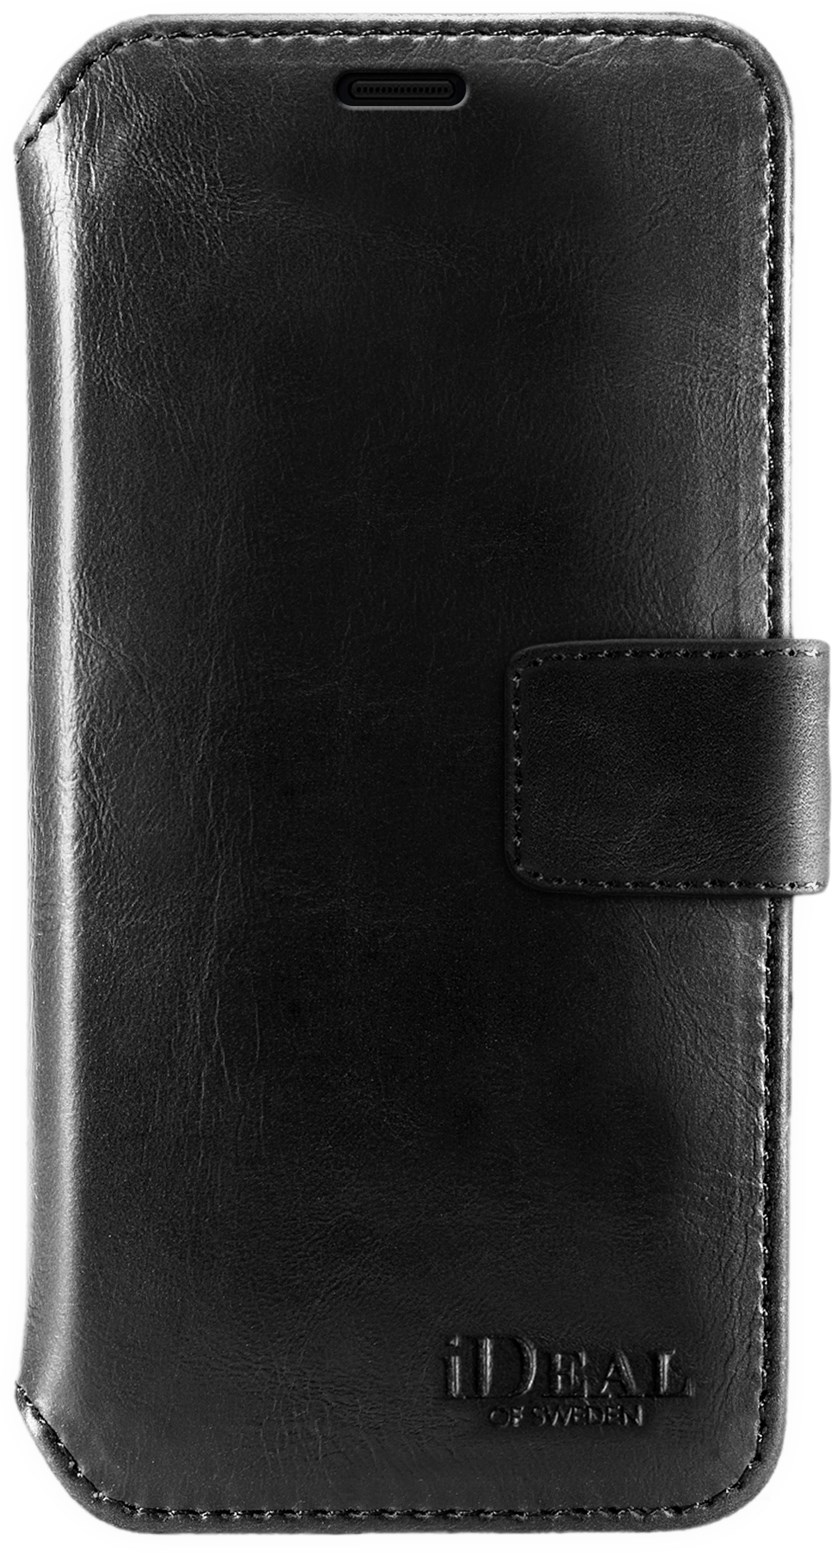 iDeal of Sweden Ideal Sthlm Wallet Huawei P30 Pro Black